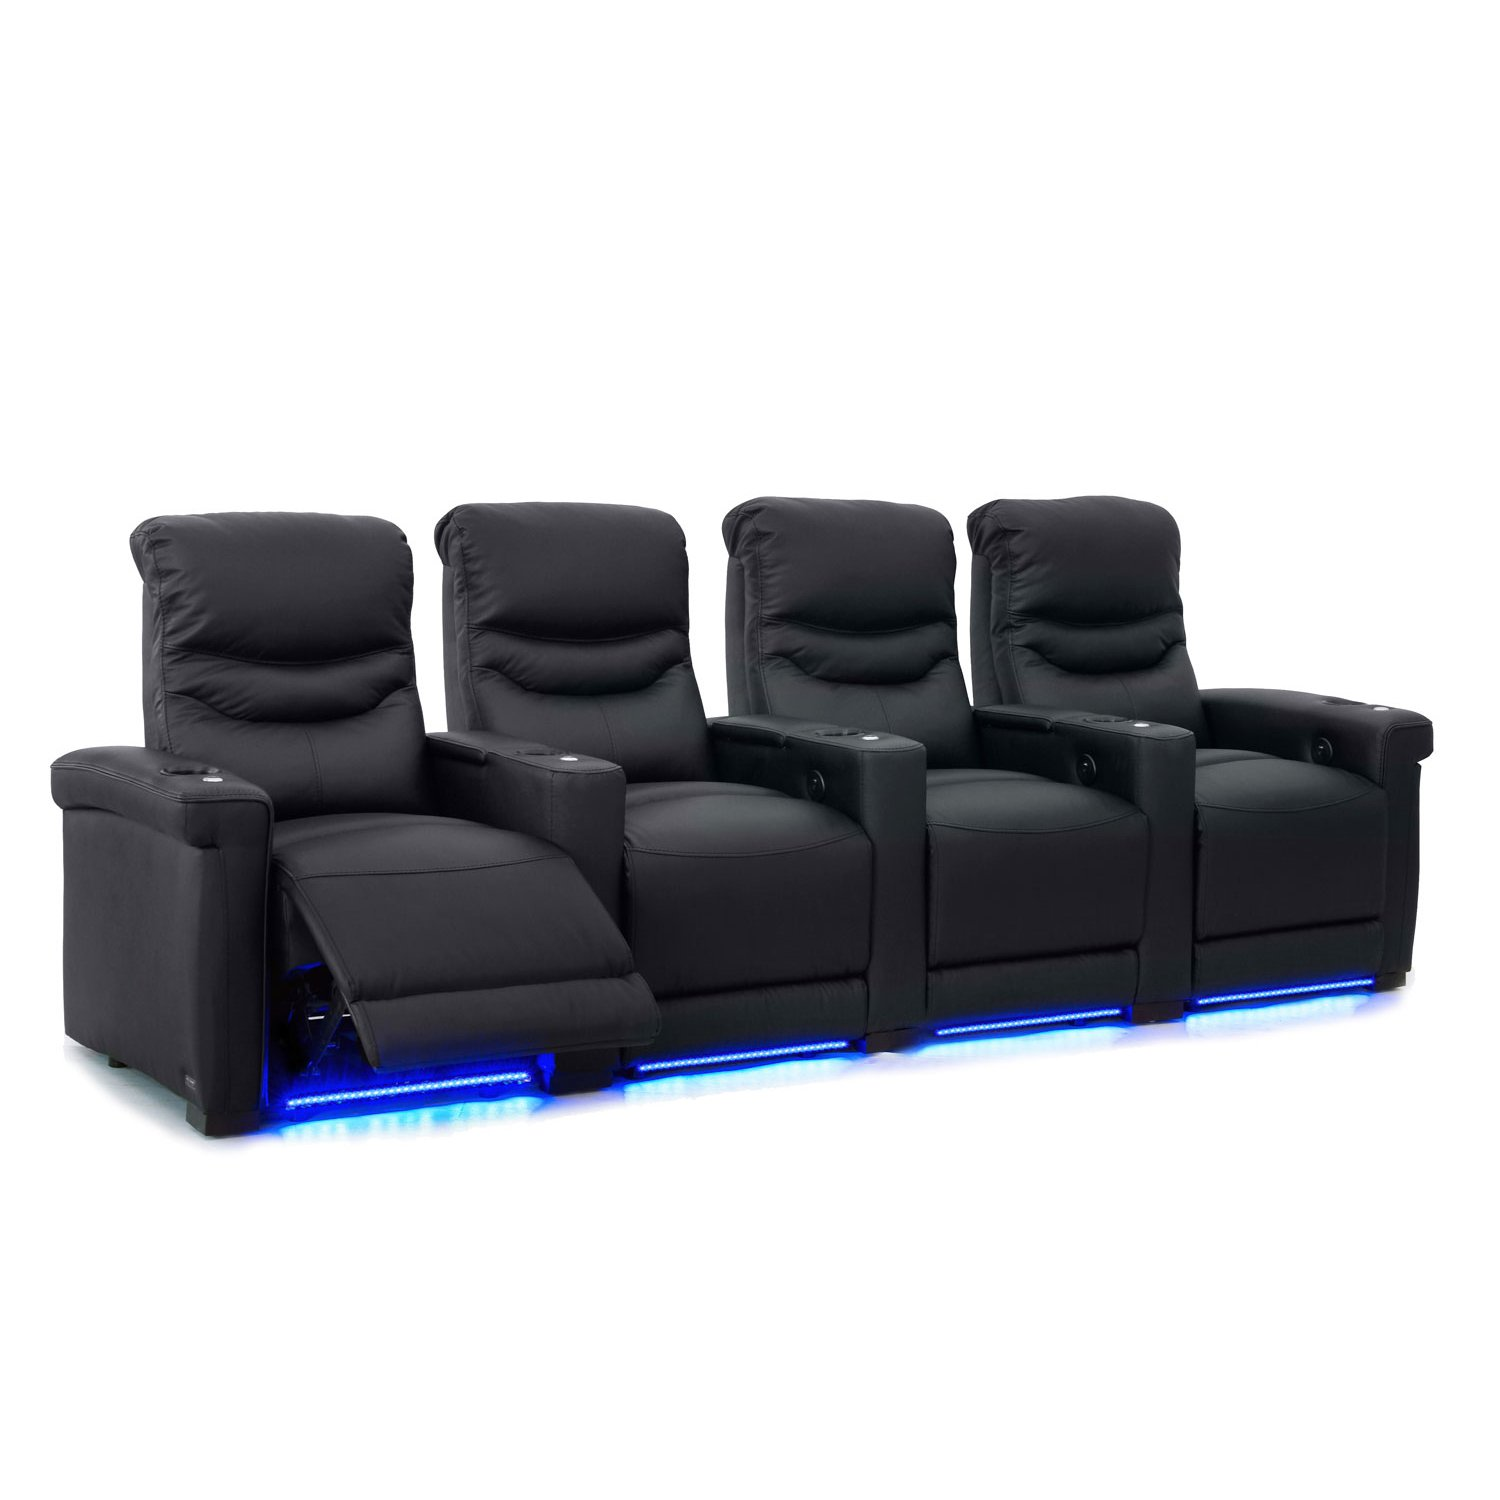 Octane Challenger XS700 Row of 4 Seats, Straight Row in Black Leather with Power Recline by Octane Seating